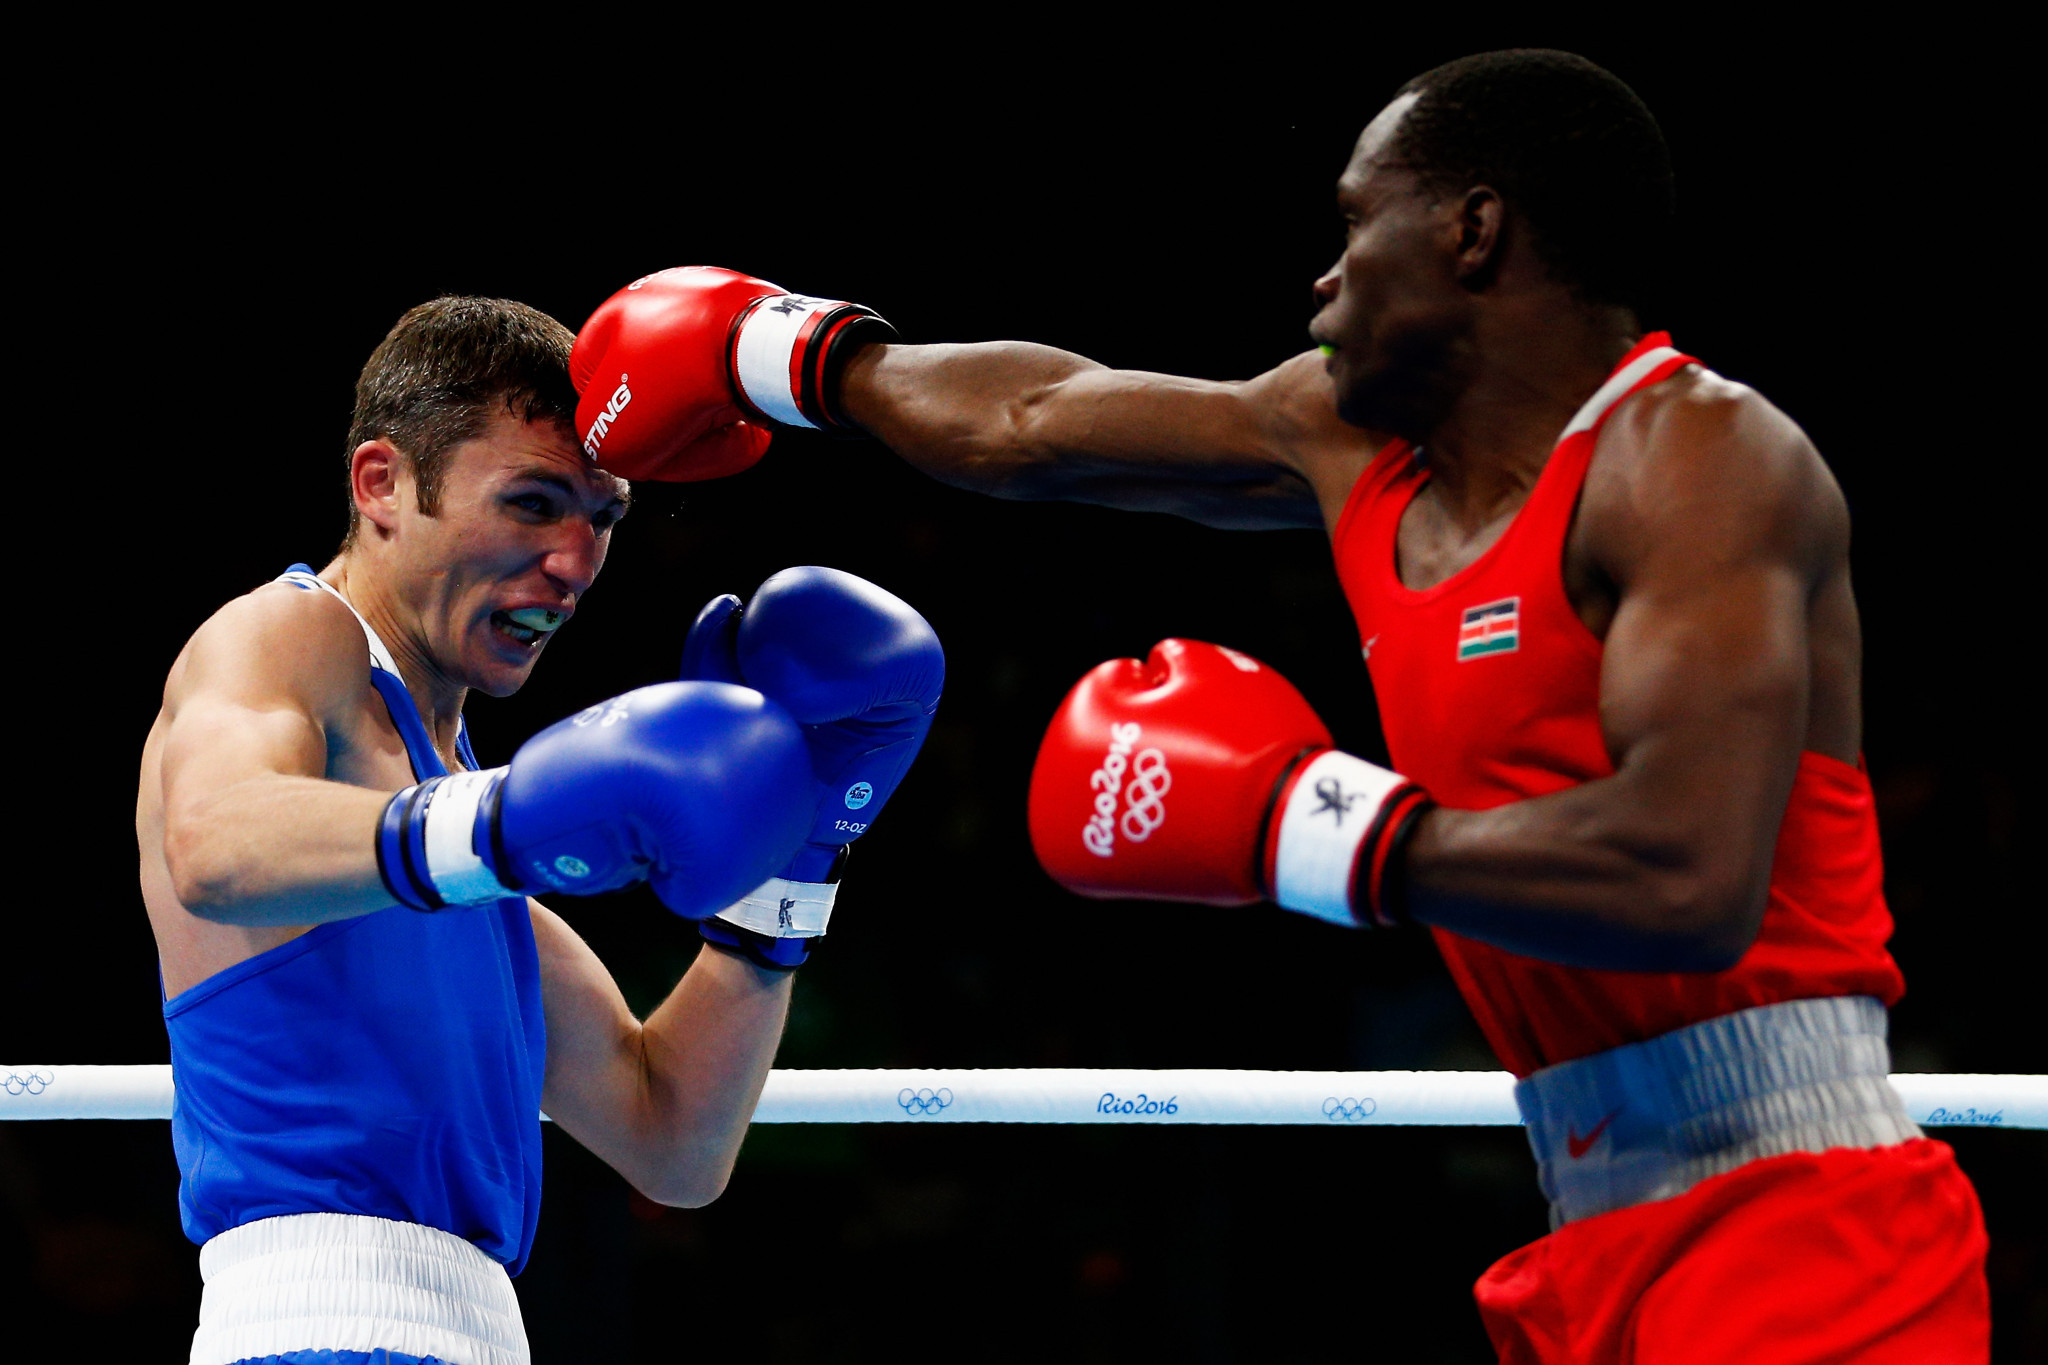 Okwiri sets up meeting with middleweight top seed at African Olympic boxing qualifier